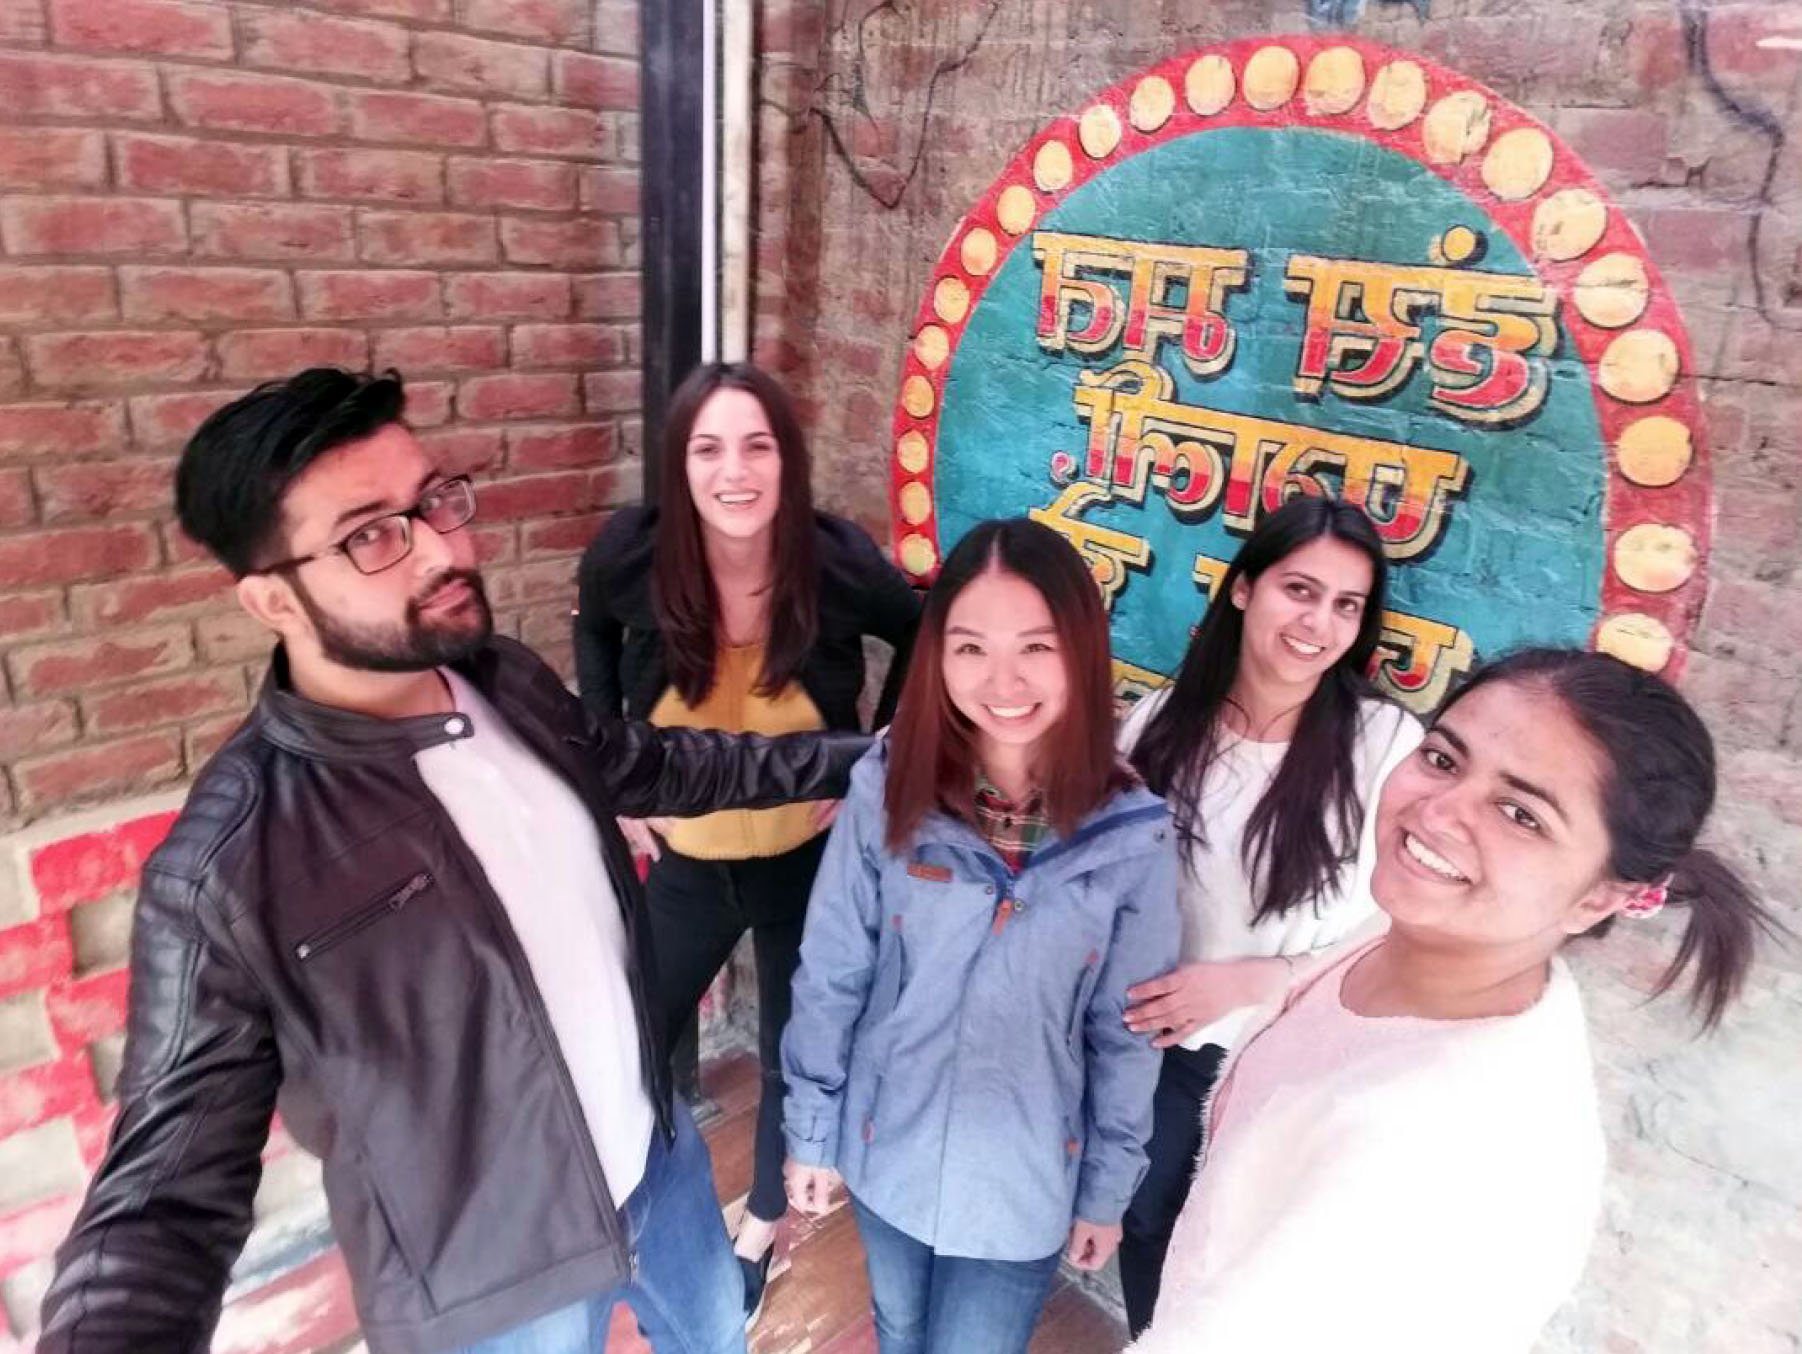 The design team, from left to right: Mohit, me, Lucy, Jasleen mam and Isha